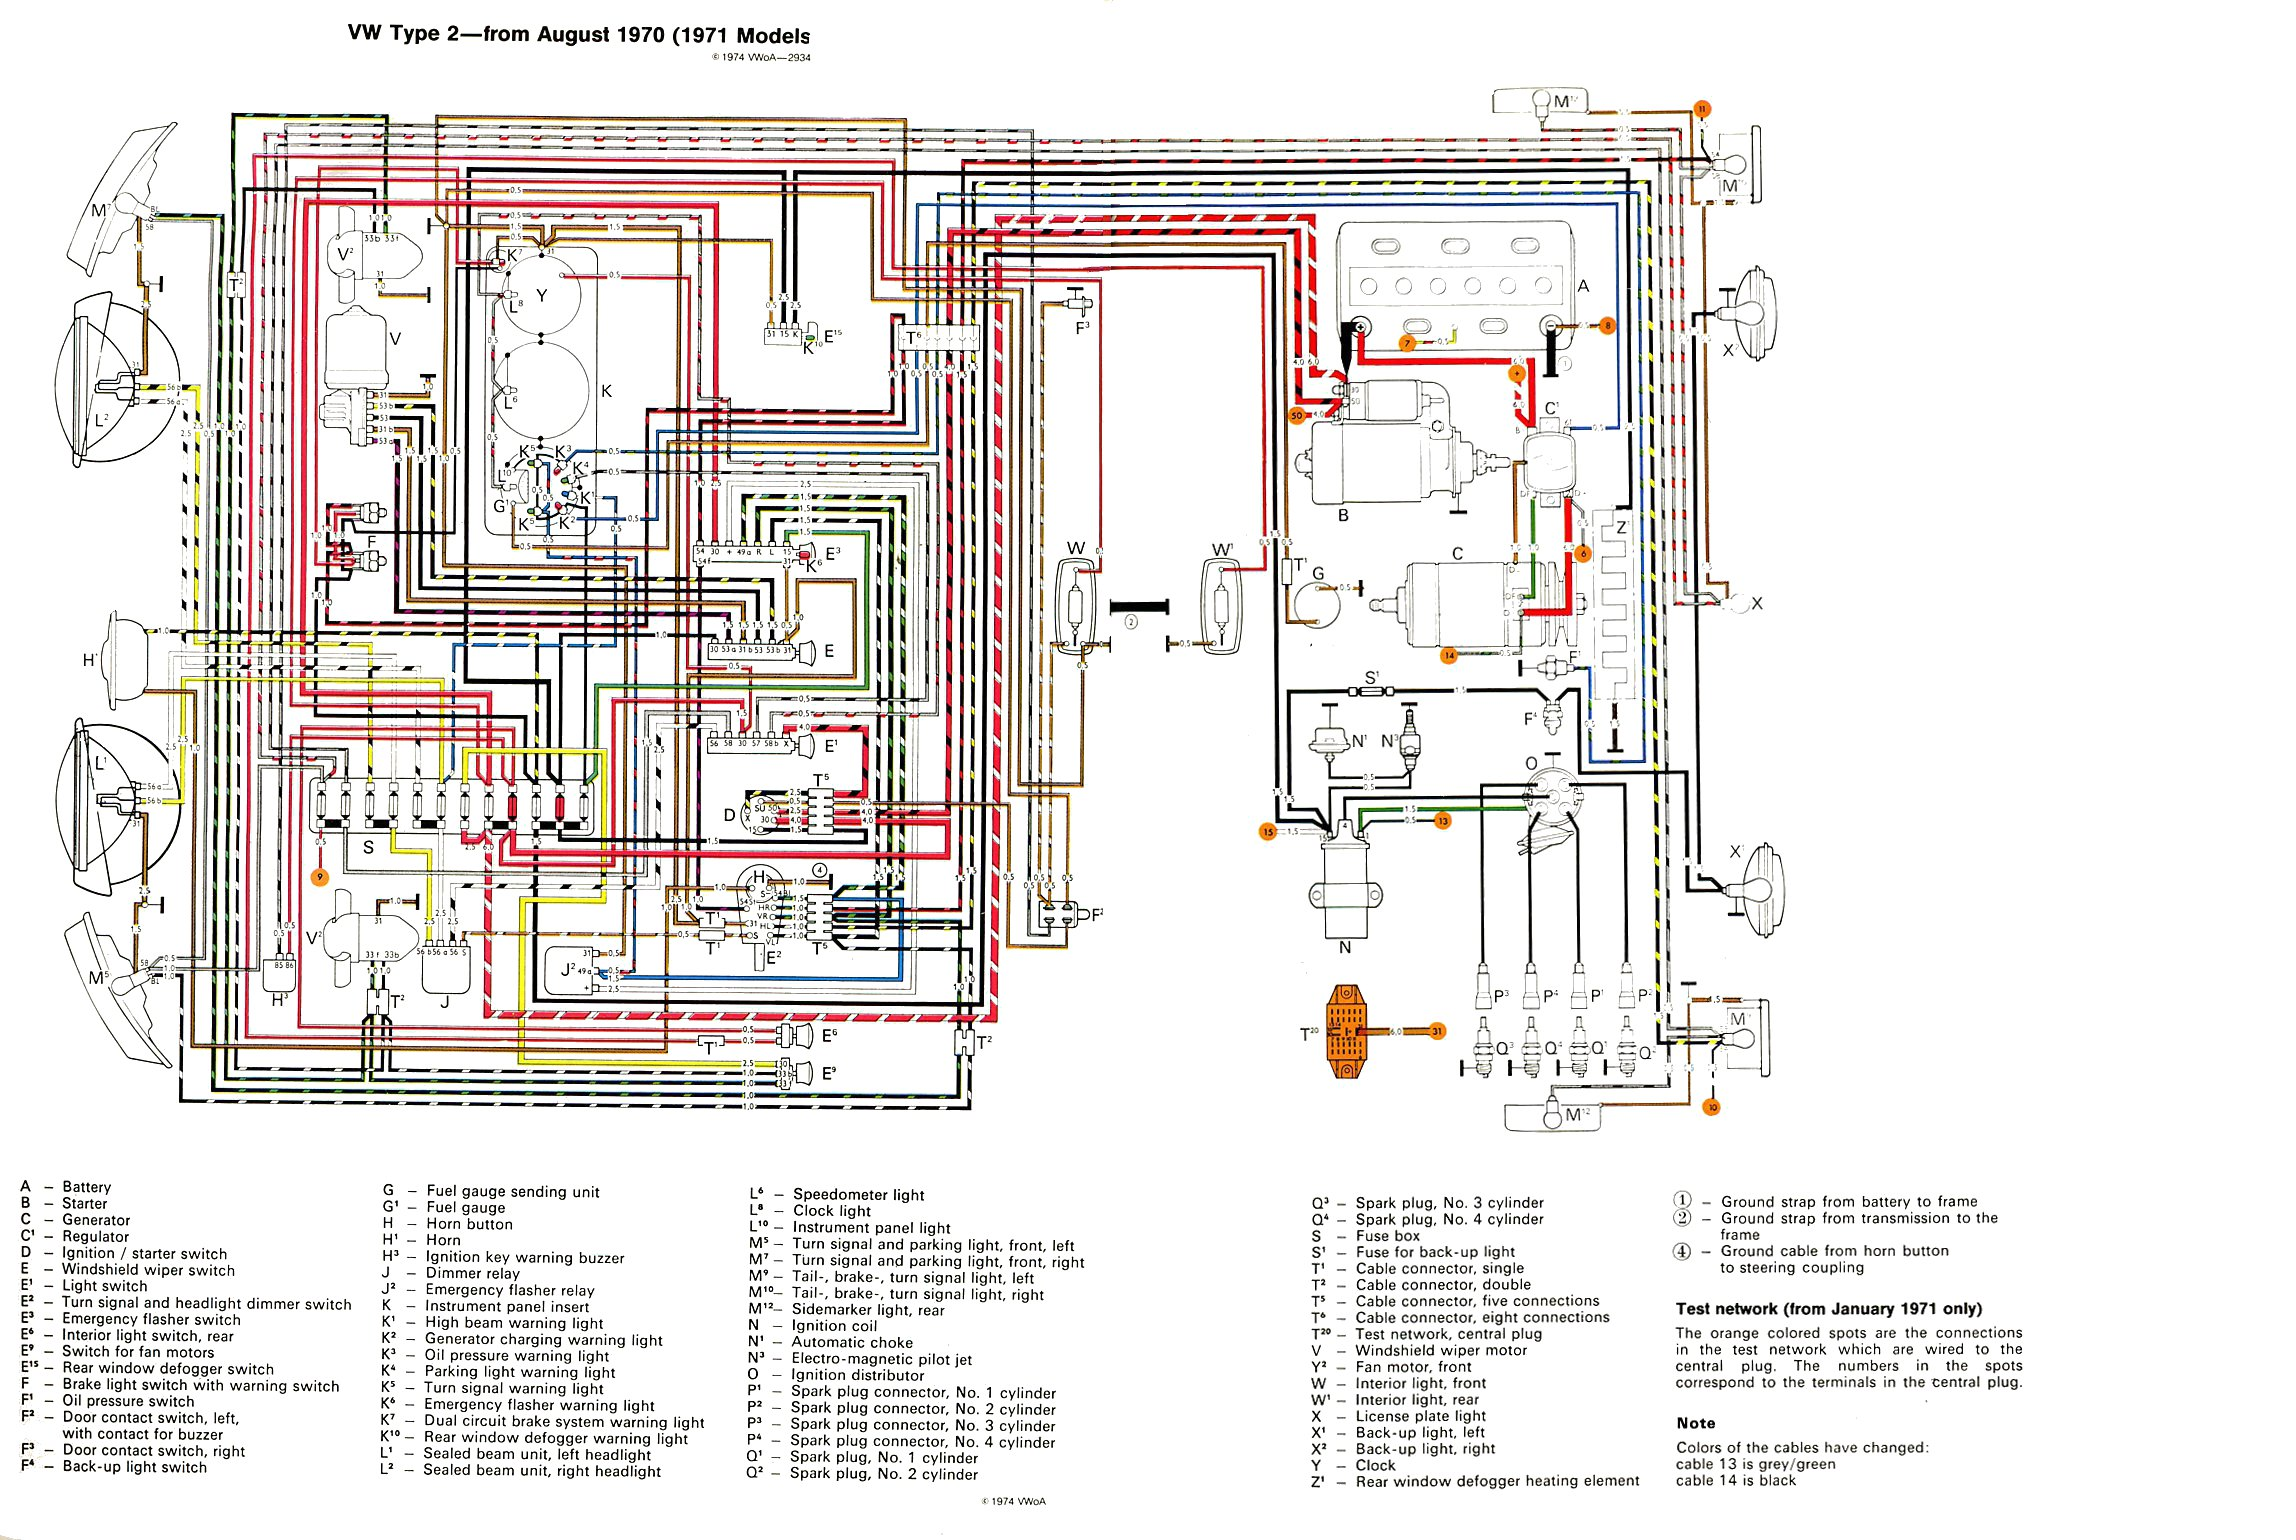 1989 Gm Alternator Wiring Diagram 4 Wire Type 2 Diagrams